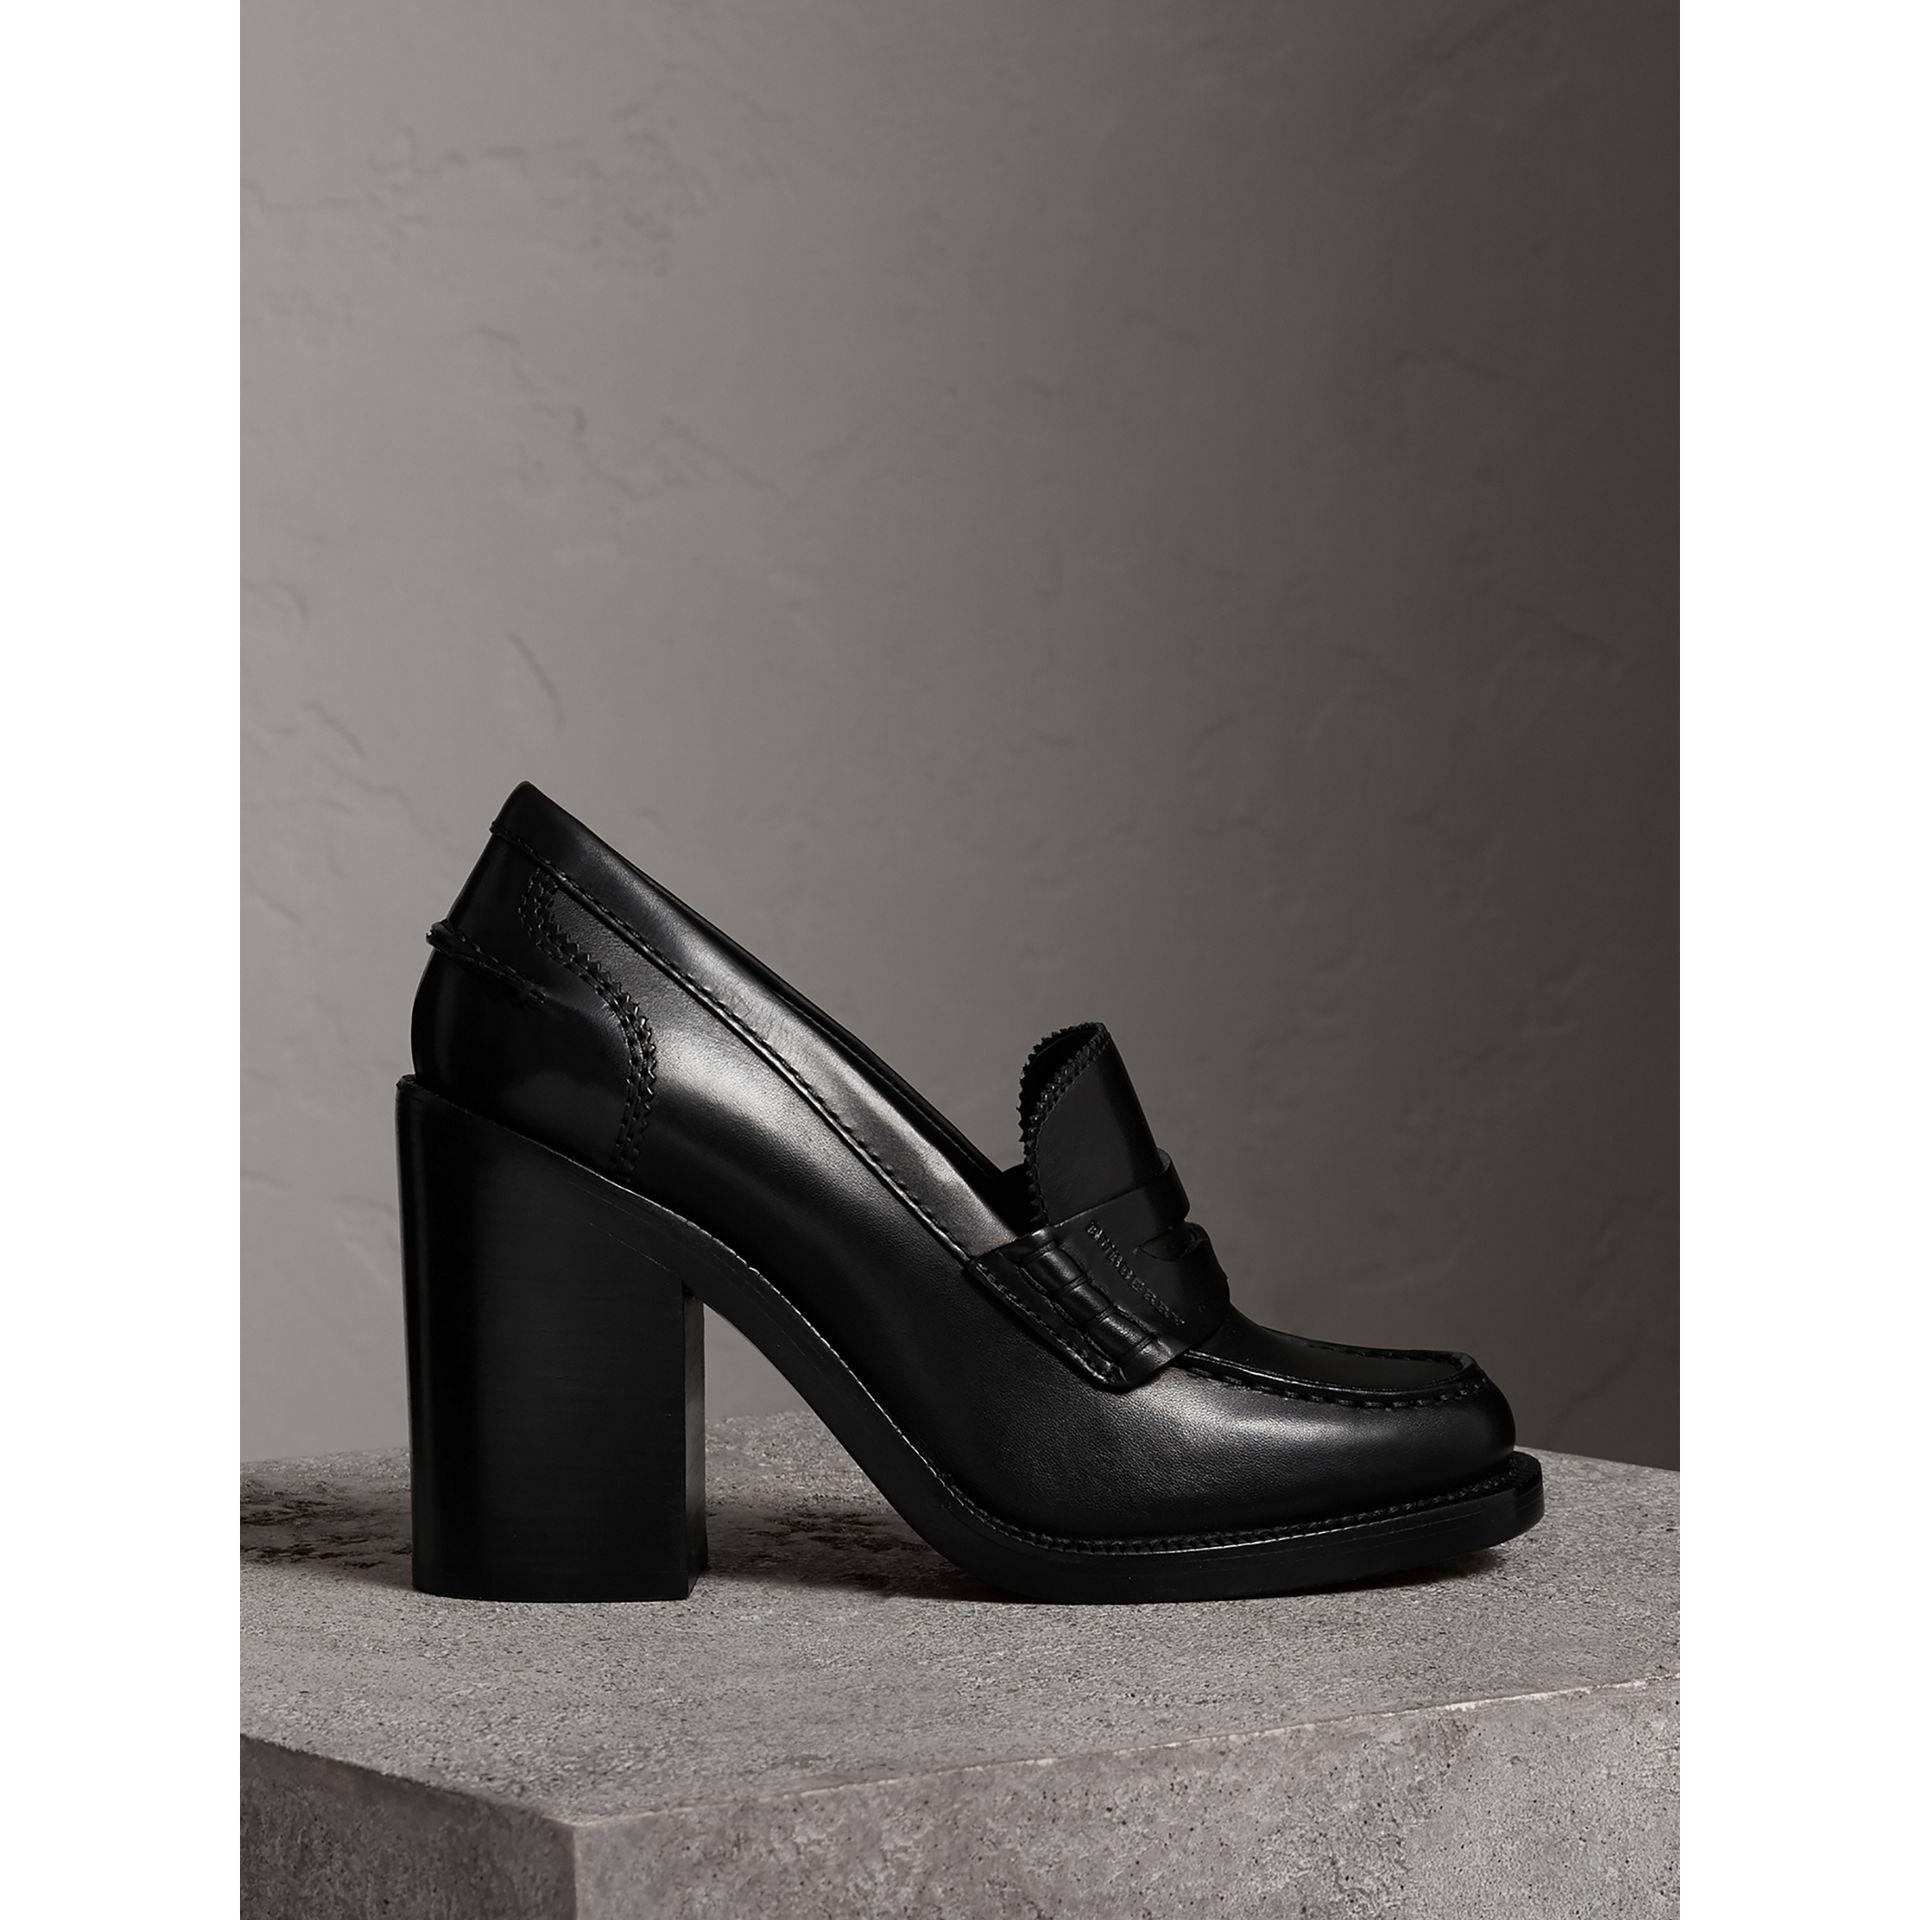 Burberry Leather Block-heel Penny Loafers in Black - Lyst